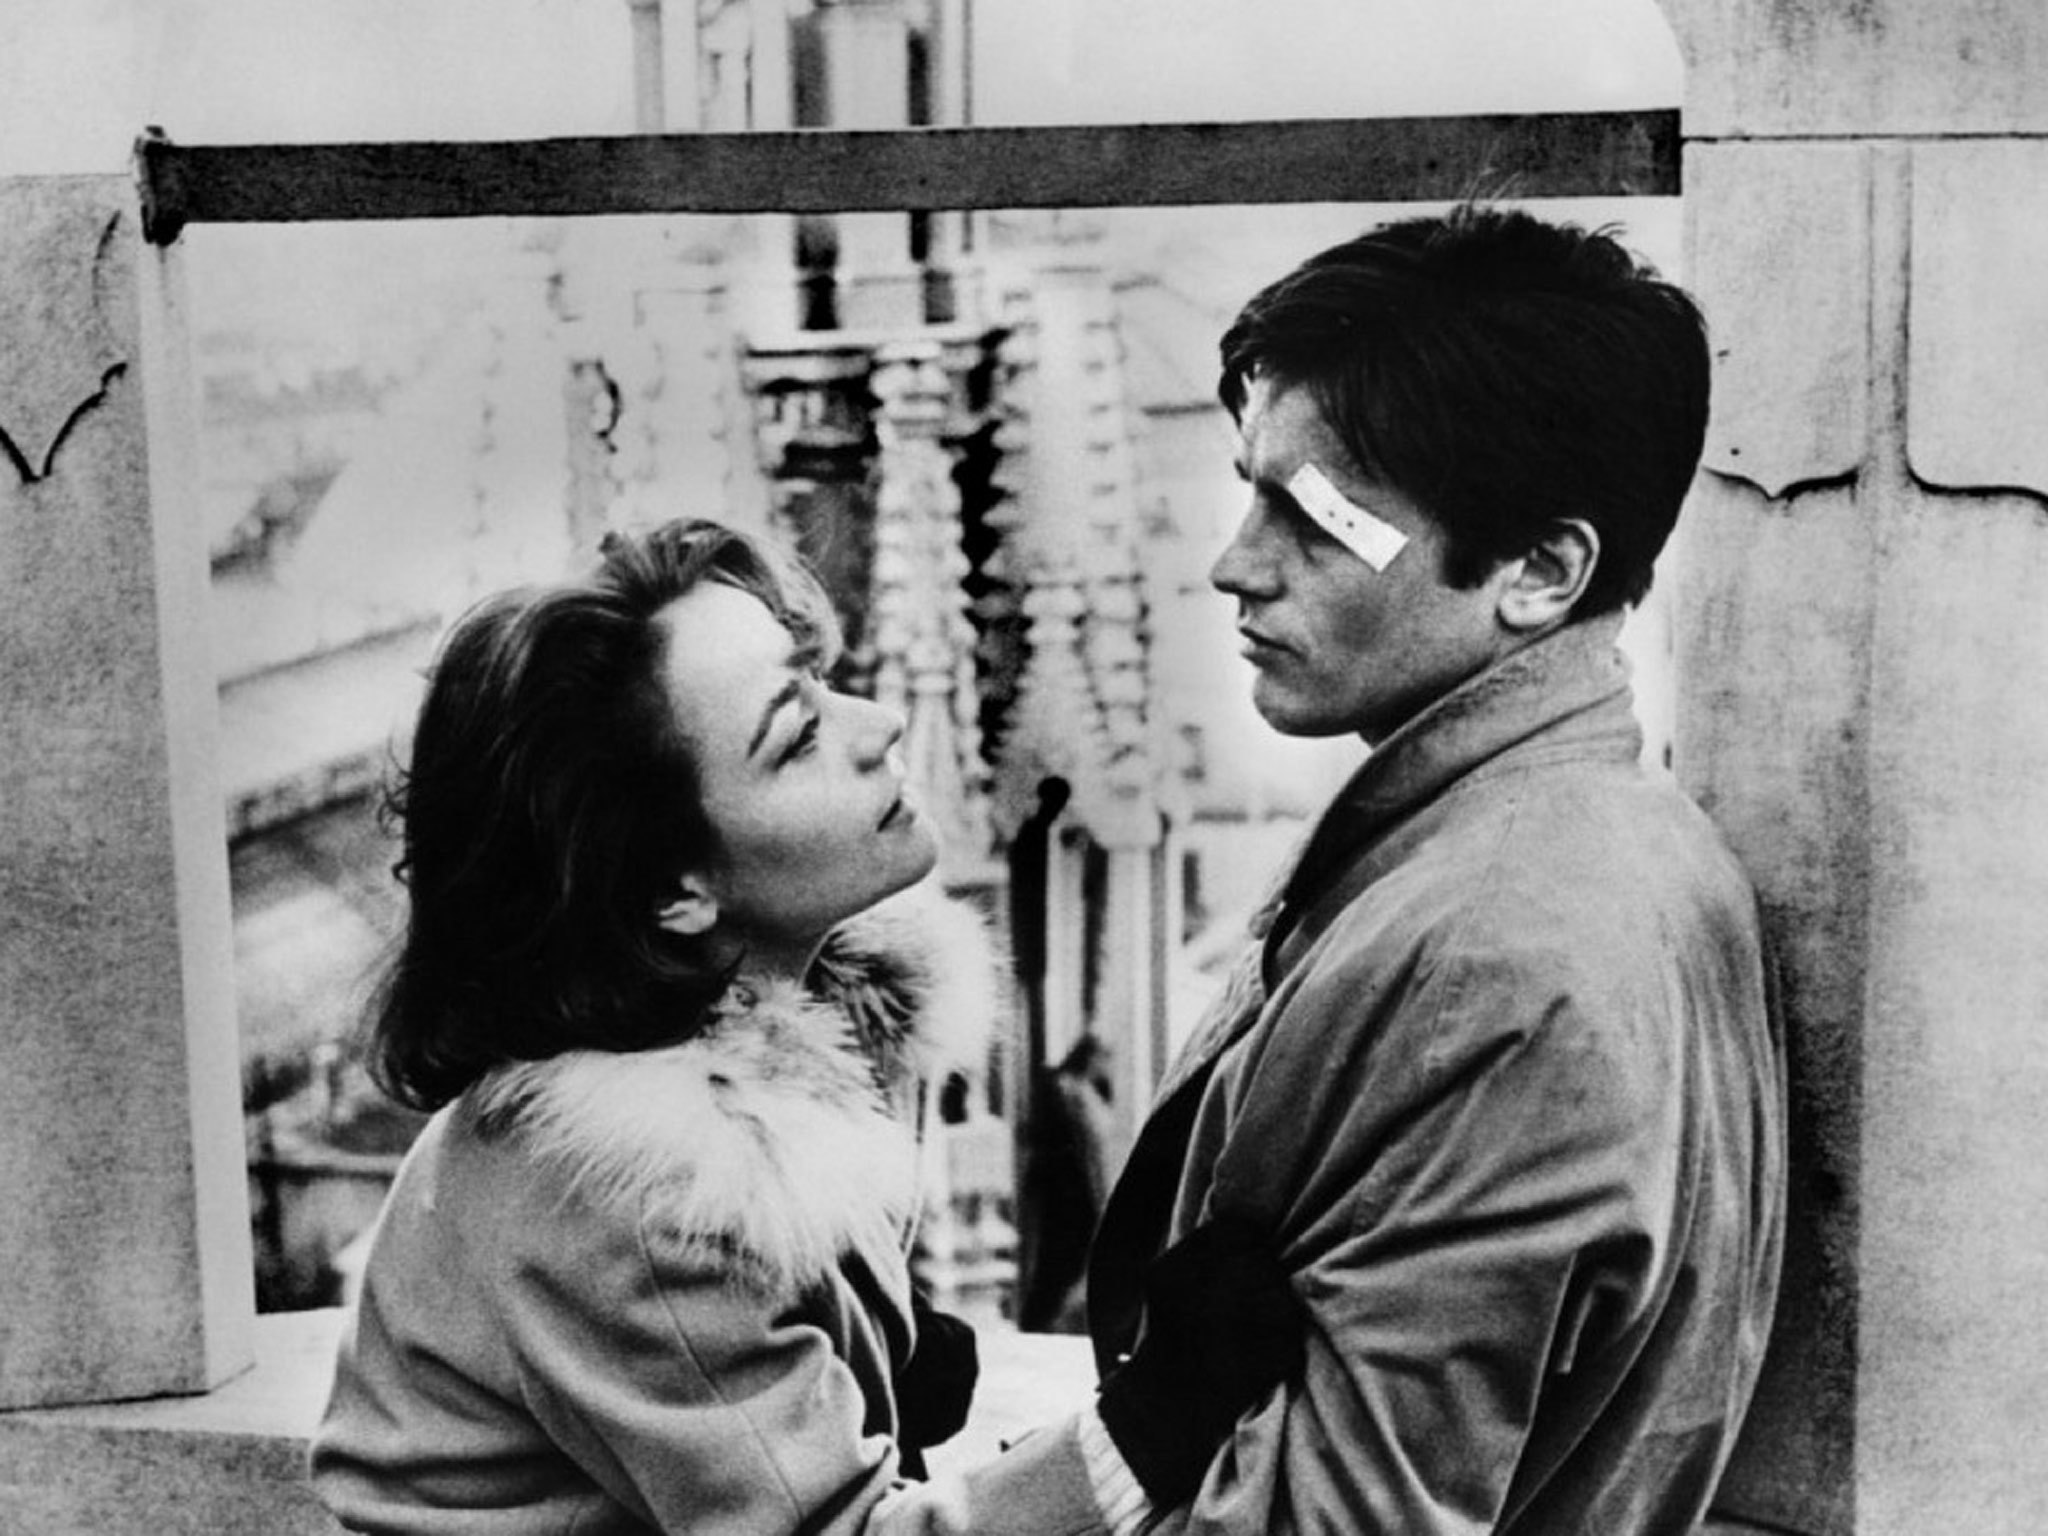 Luchino Visconti's 1960 epic Rocco and His Brothers